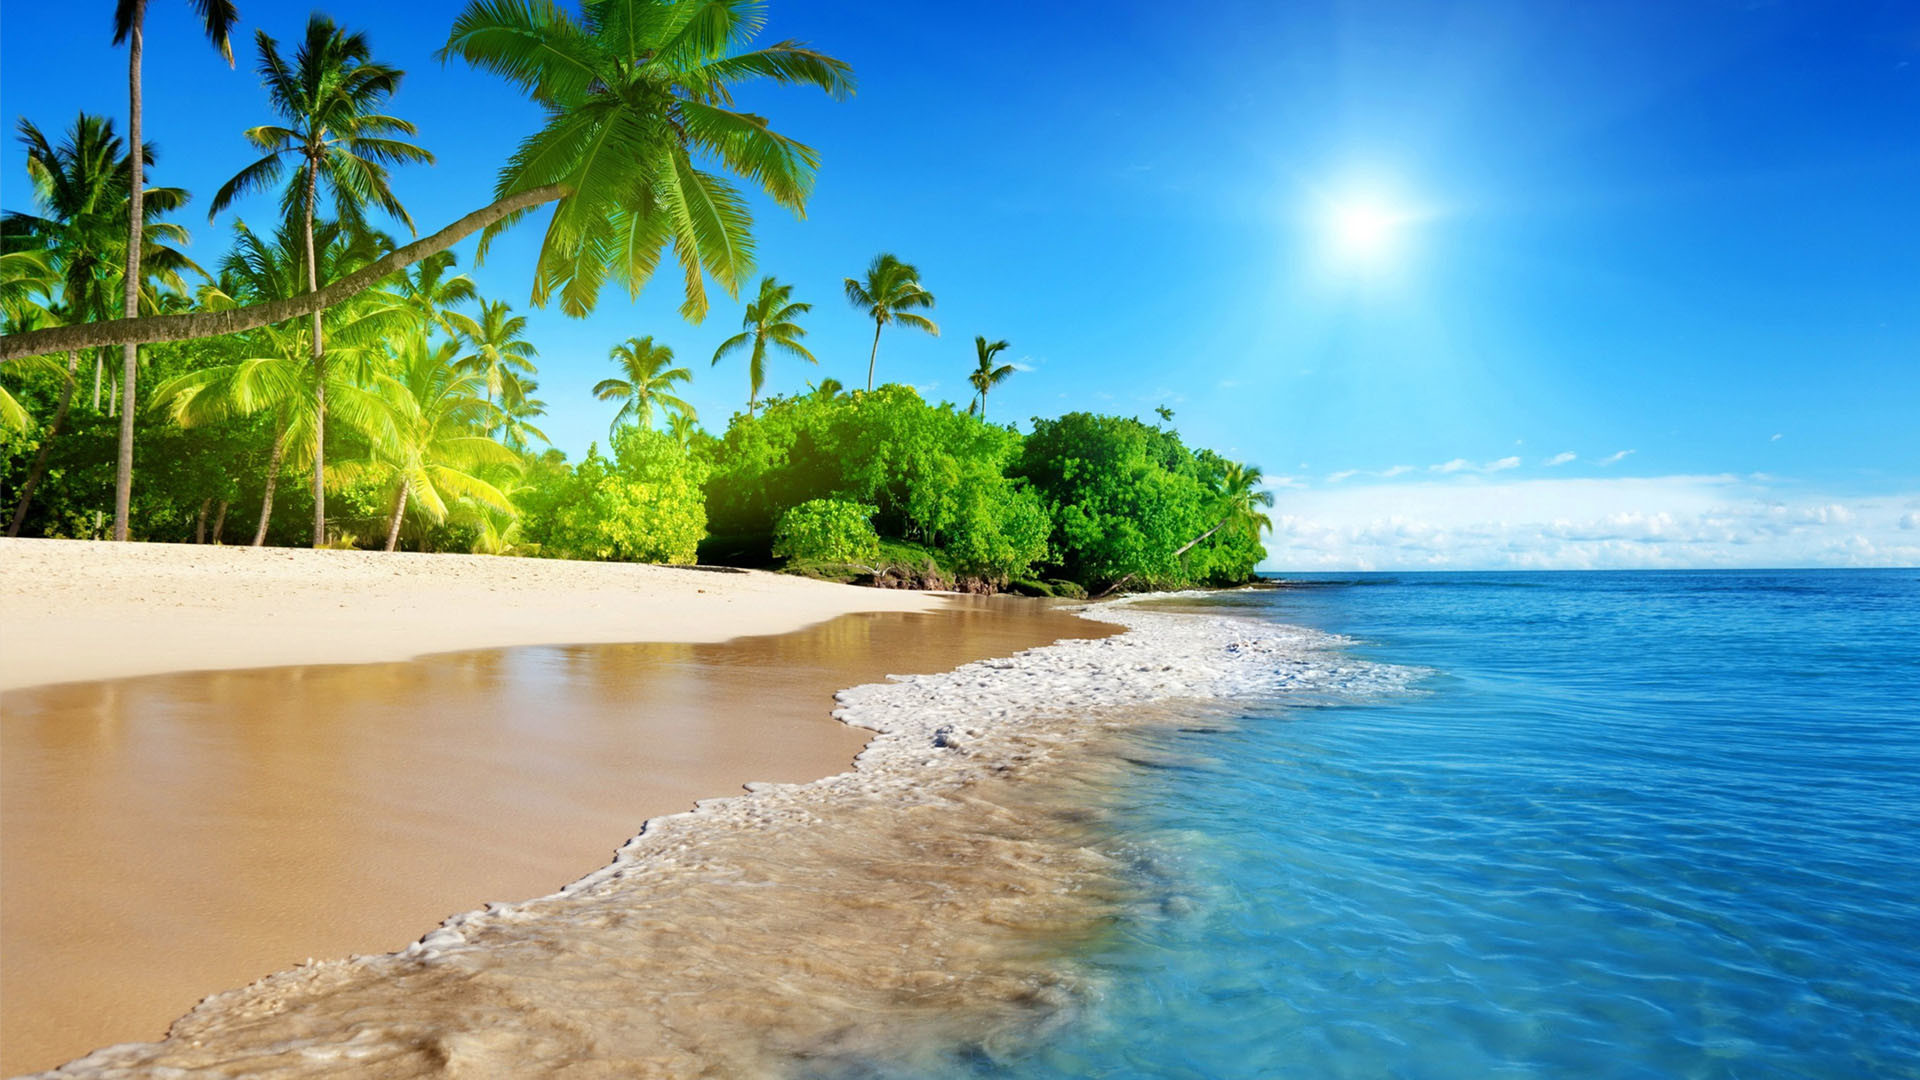 Awesome Beach Wallpaper